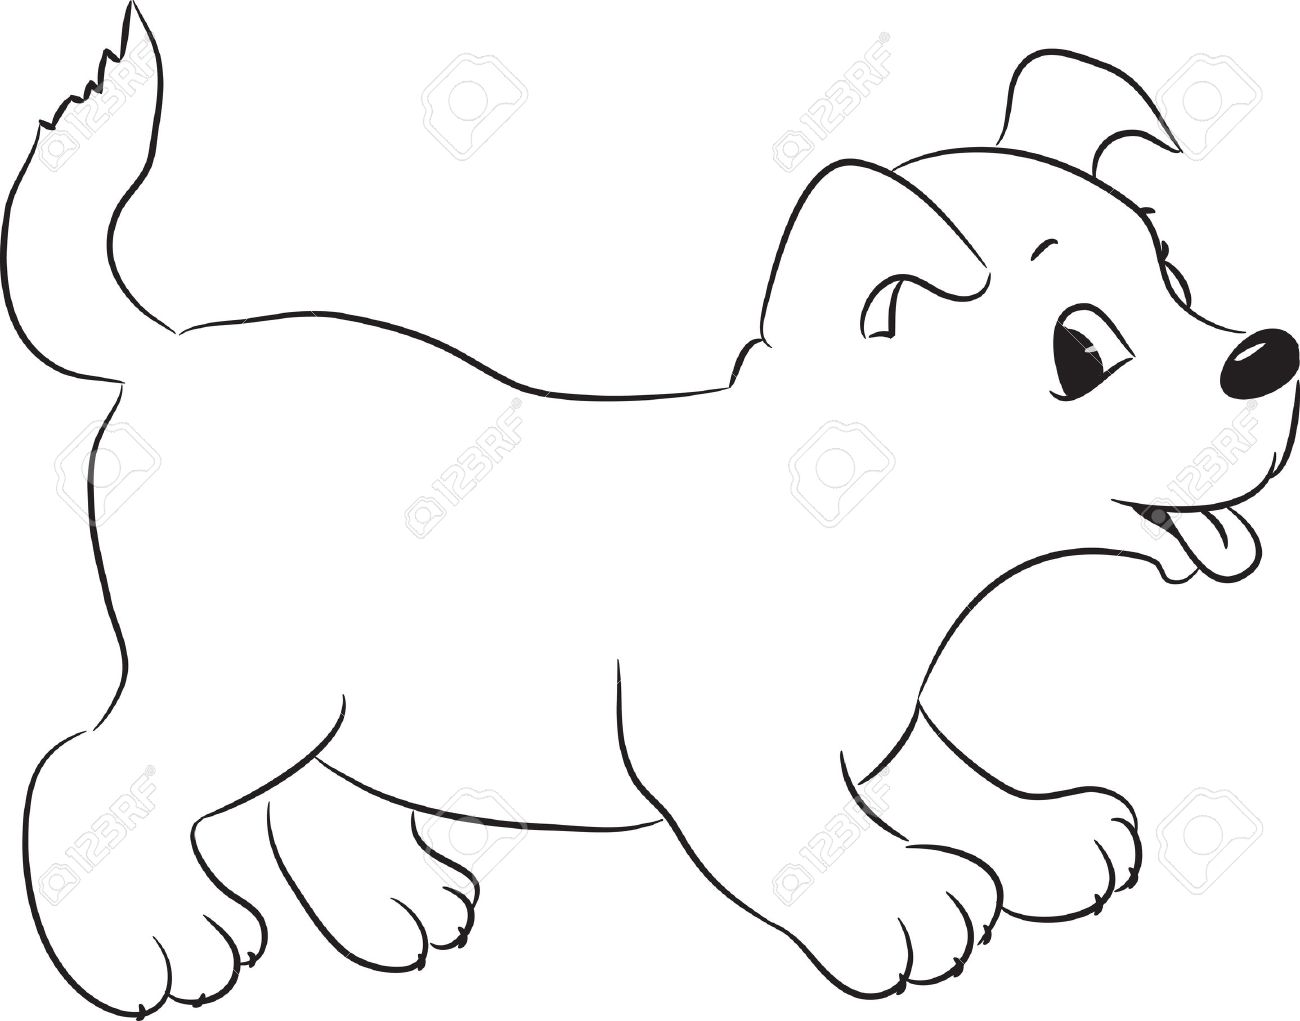 Dogs Cartoon Drawing